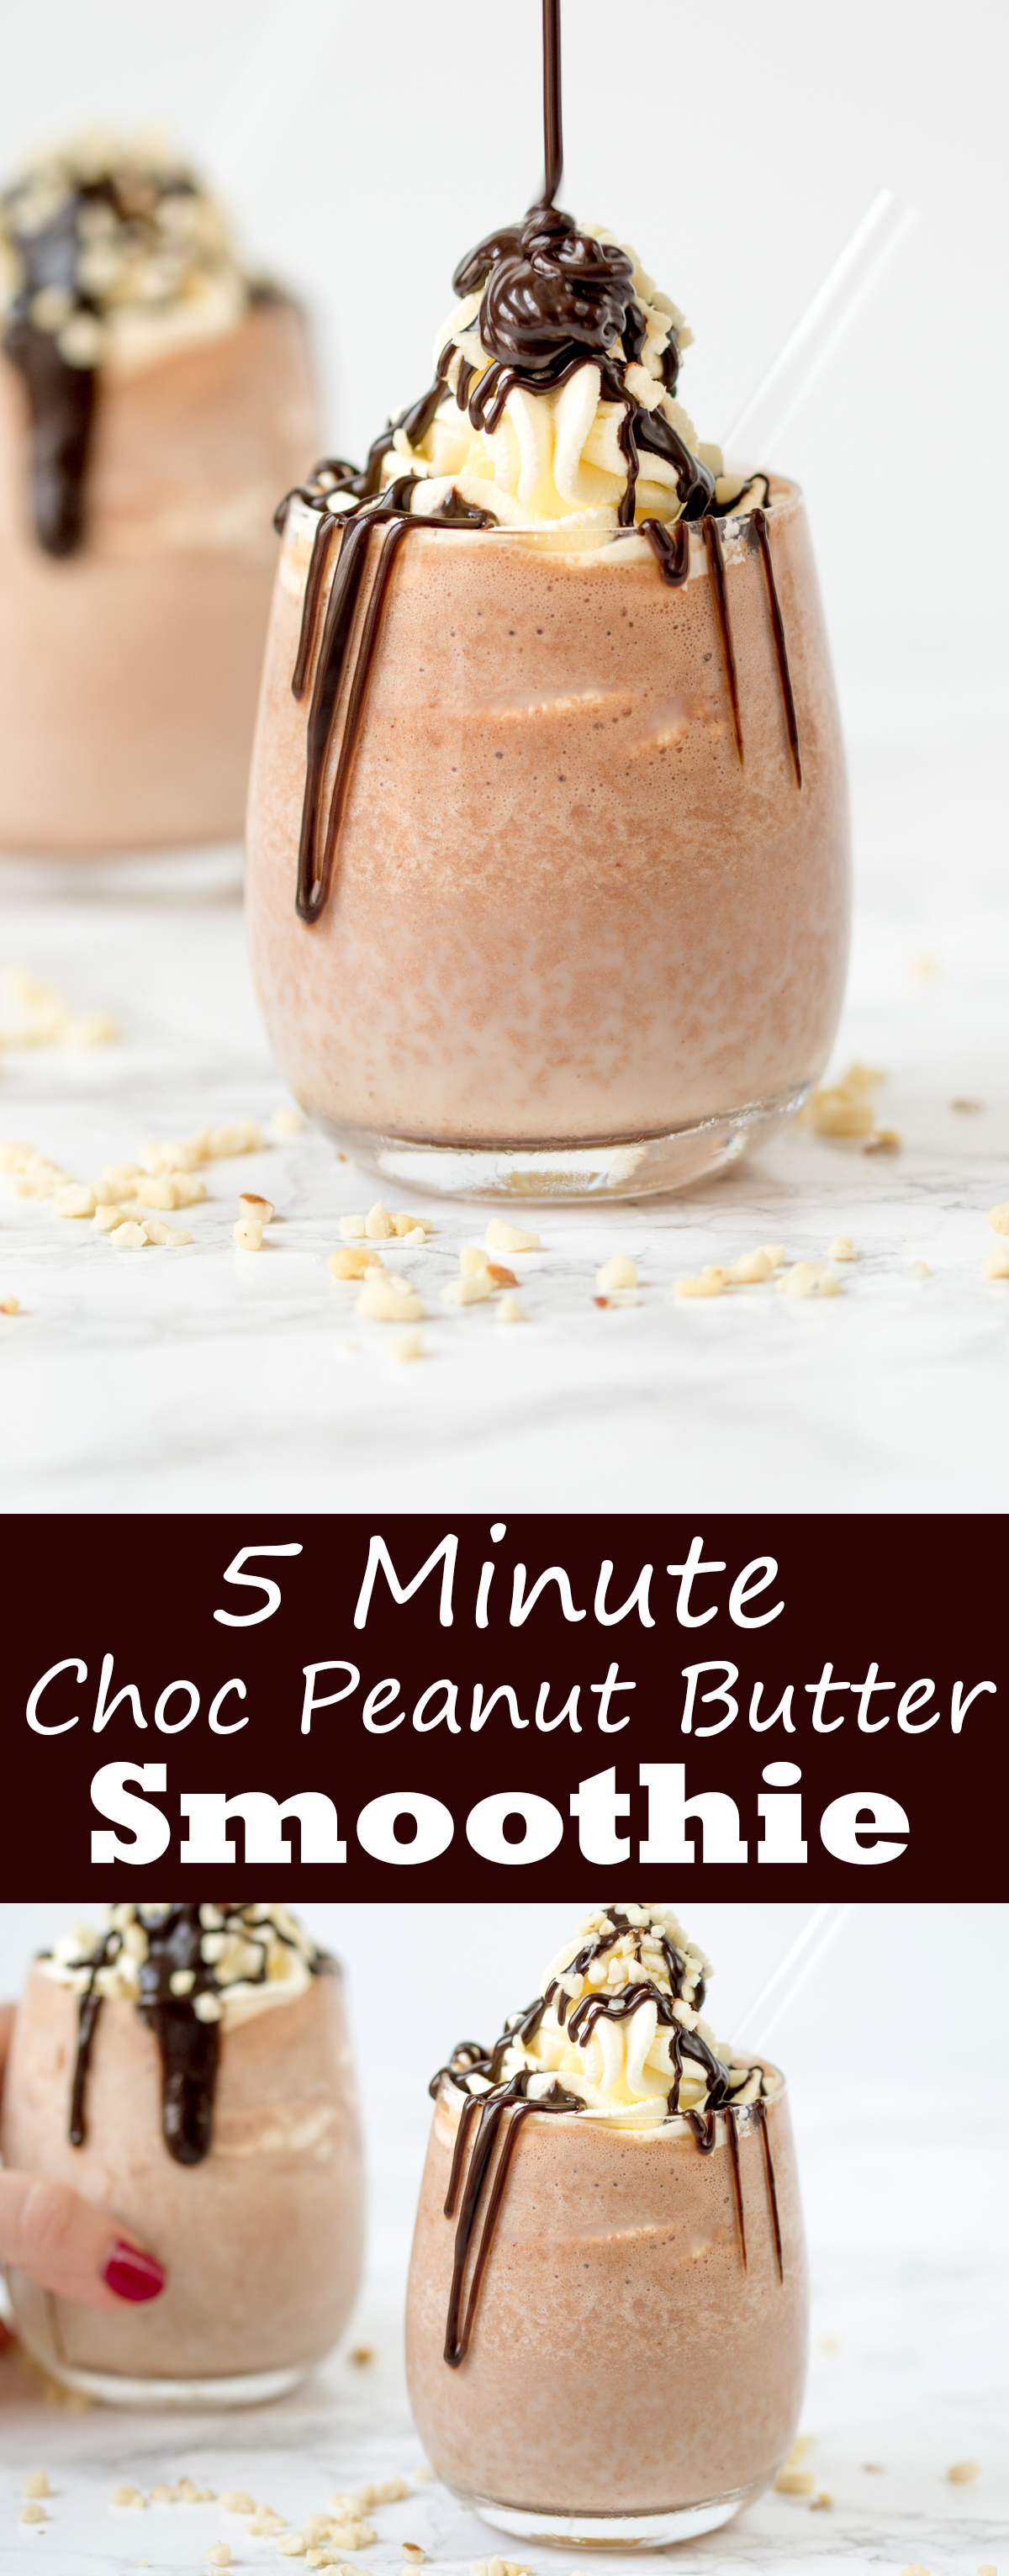 5 Minute chocolate peanut butter smoothie with whipped cream and chocolate sauce. So delicious!!